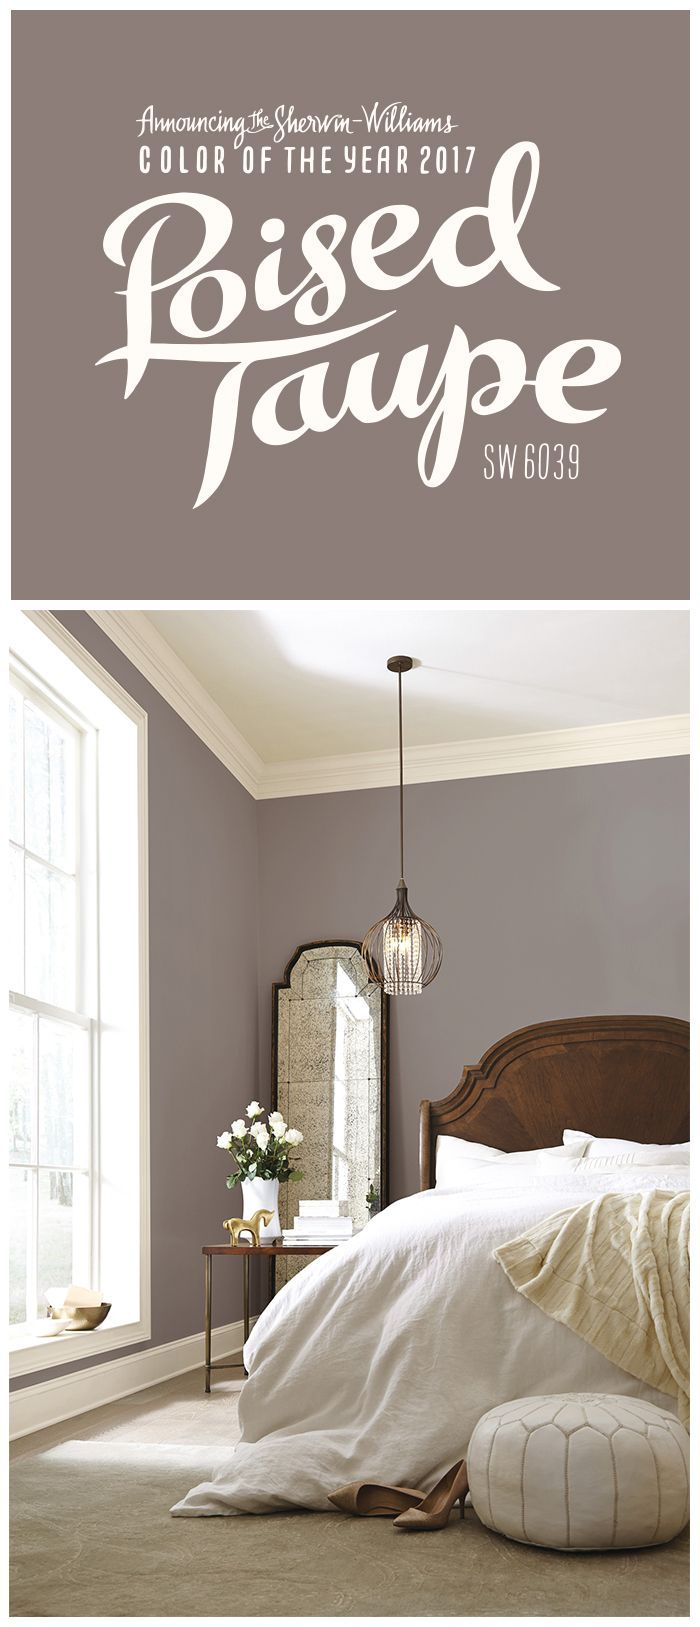 5fa8200d1280a854643510d35abf5eb9  guest room paint ideas neutral master bedroom paint colors We're thrilled about our 2017 Color of the Year: Poised Taupe SW 6039. This ti...